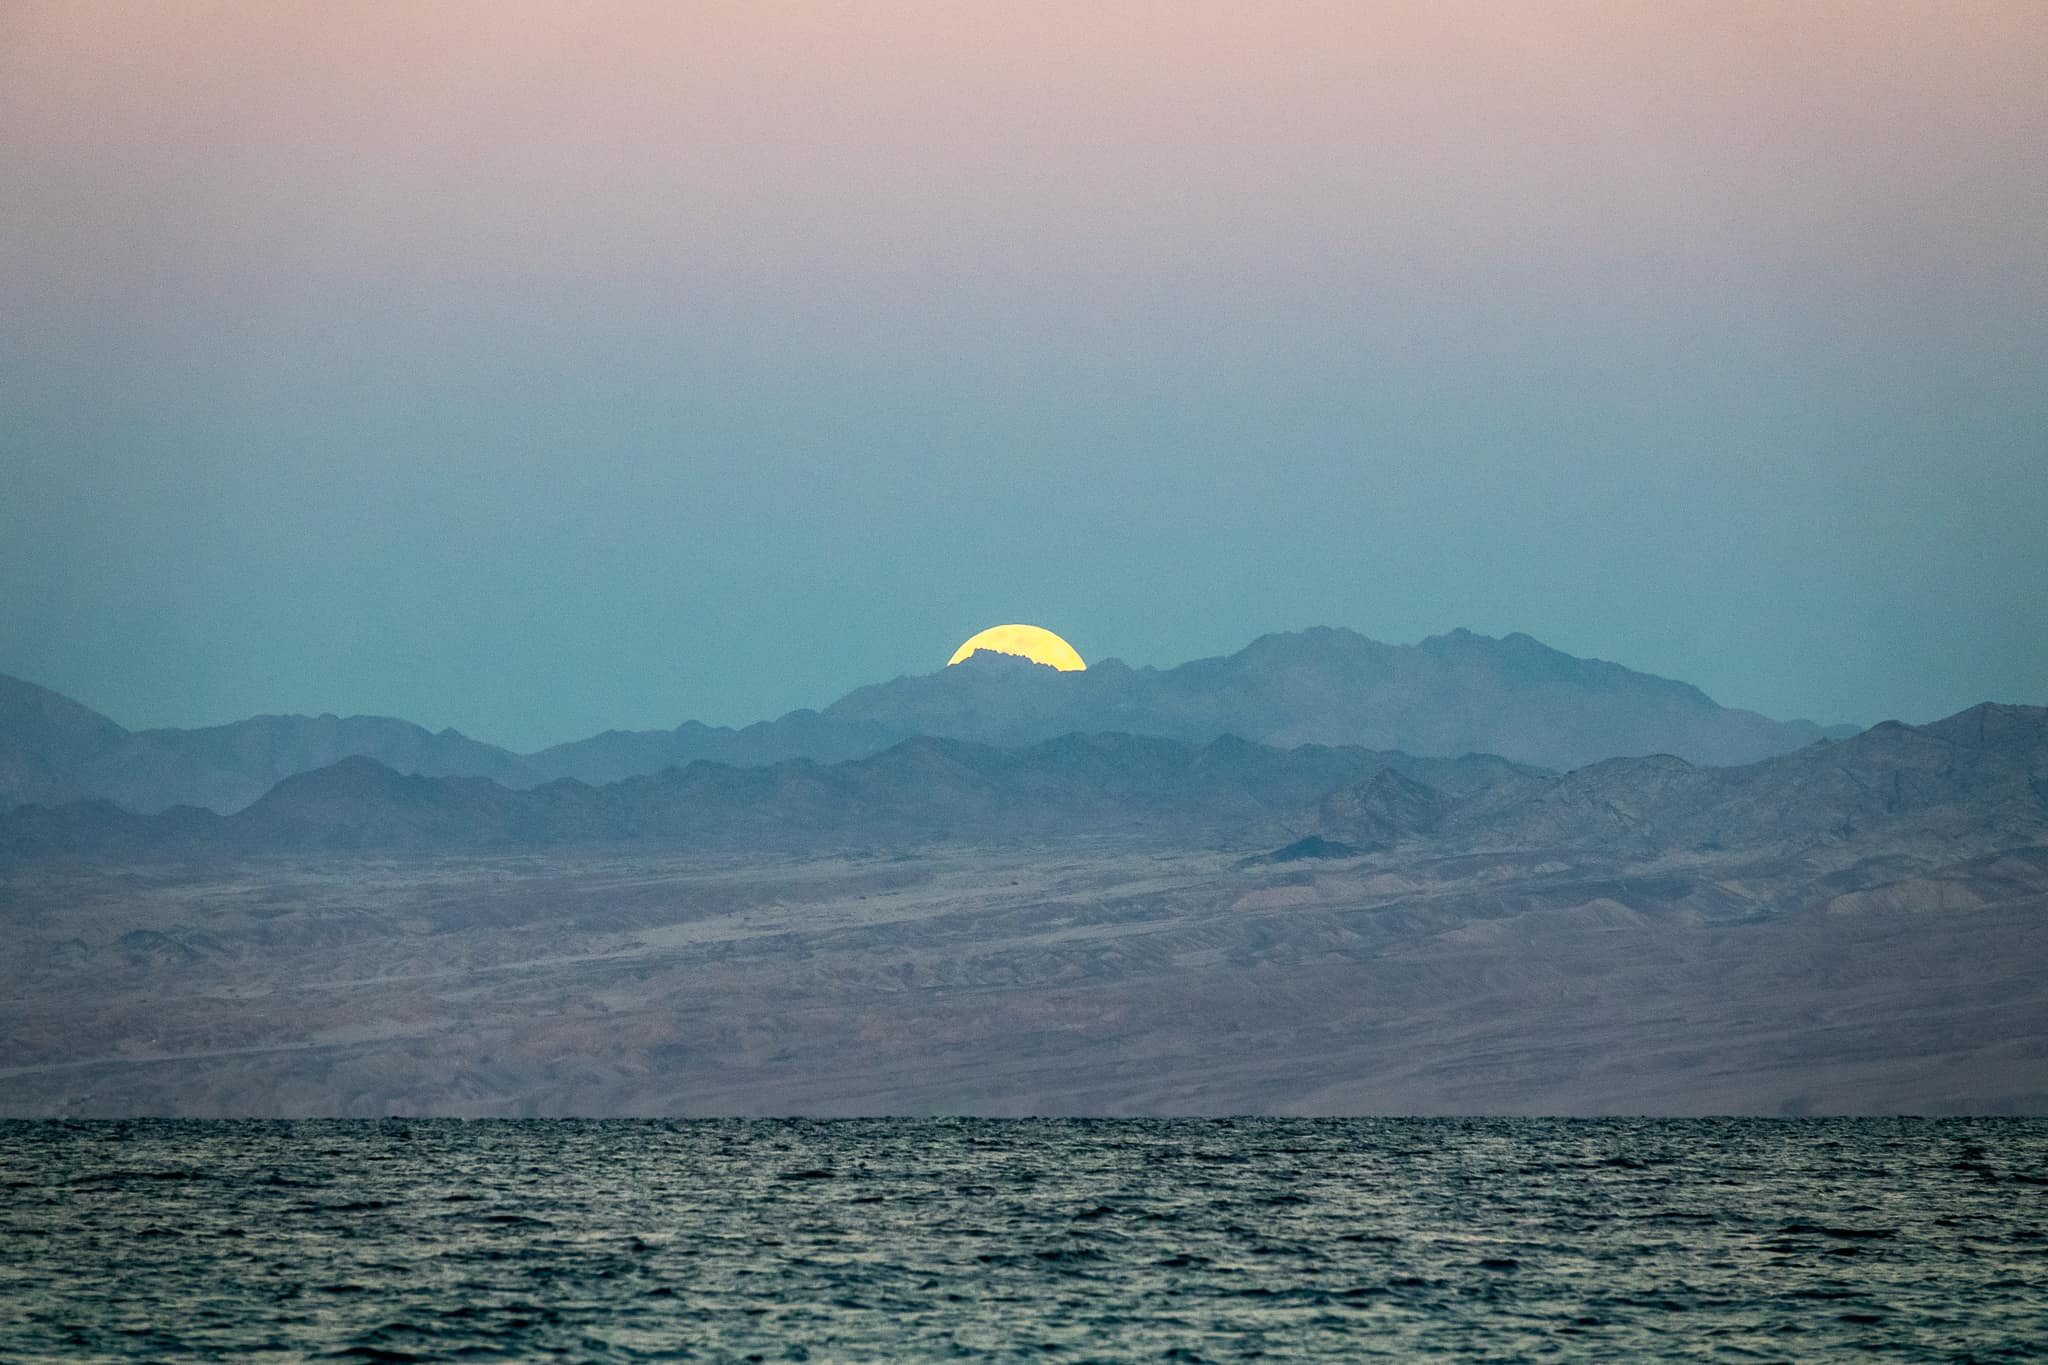 Moonrise over Saudi Arabia. Results of one year of blogging